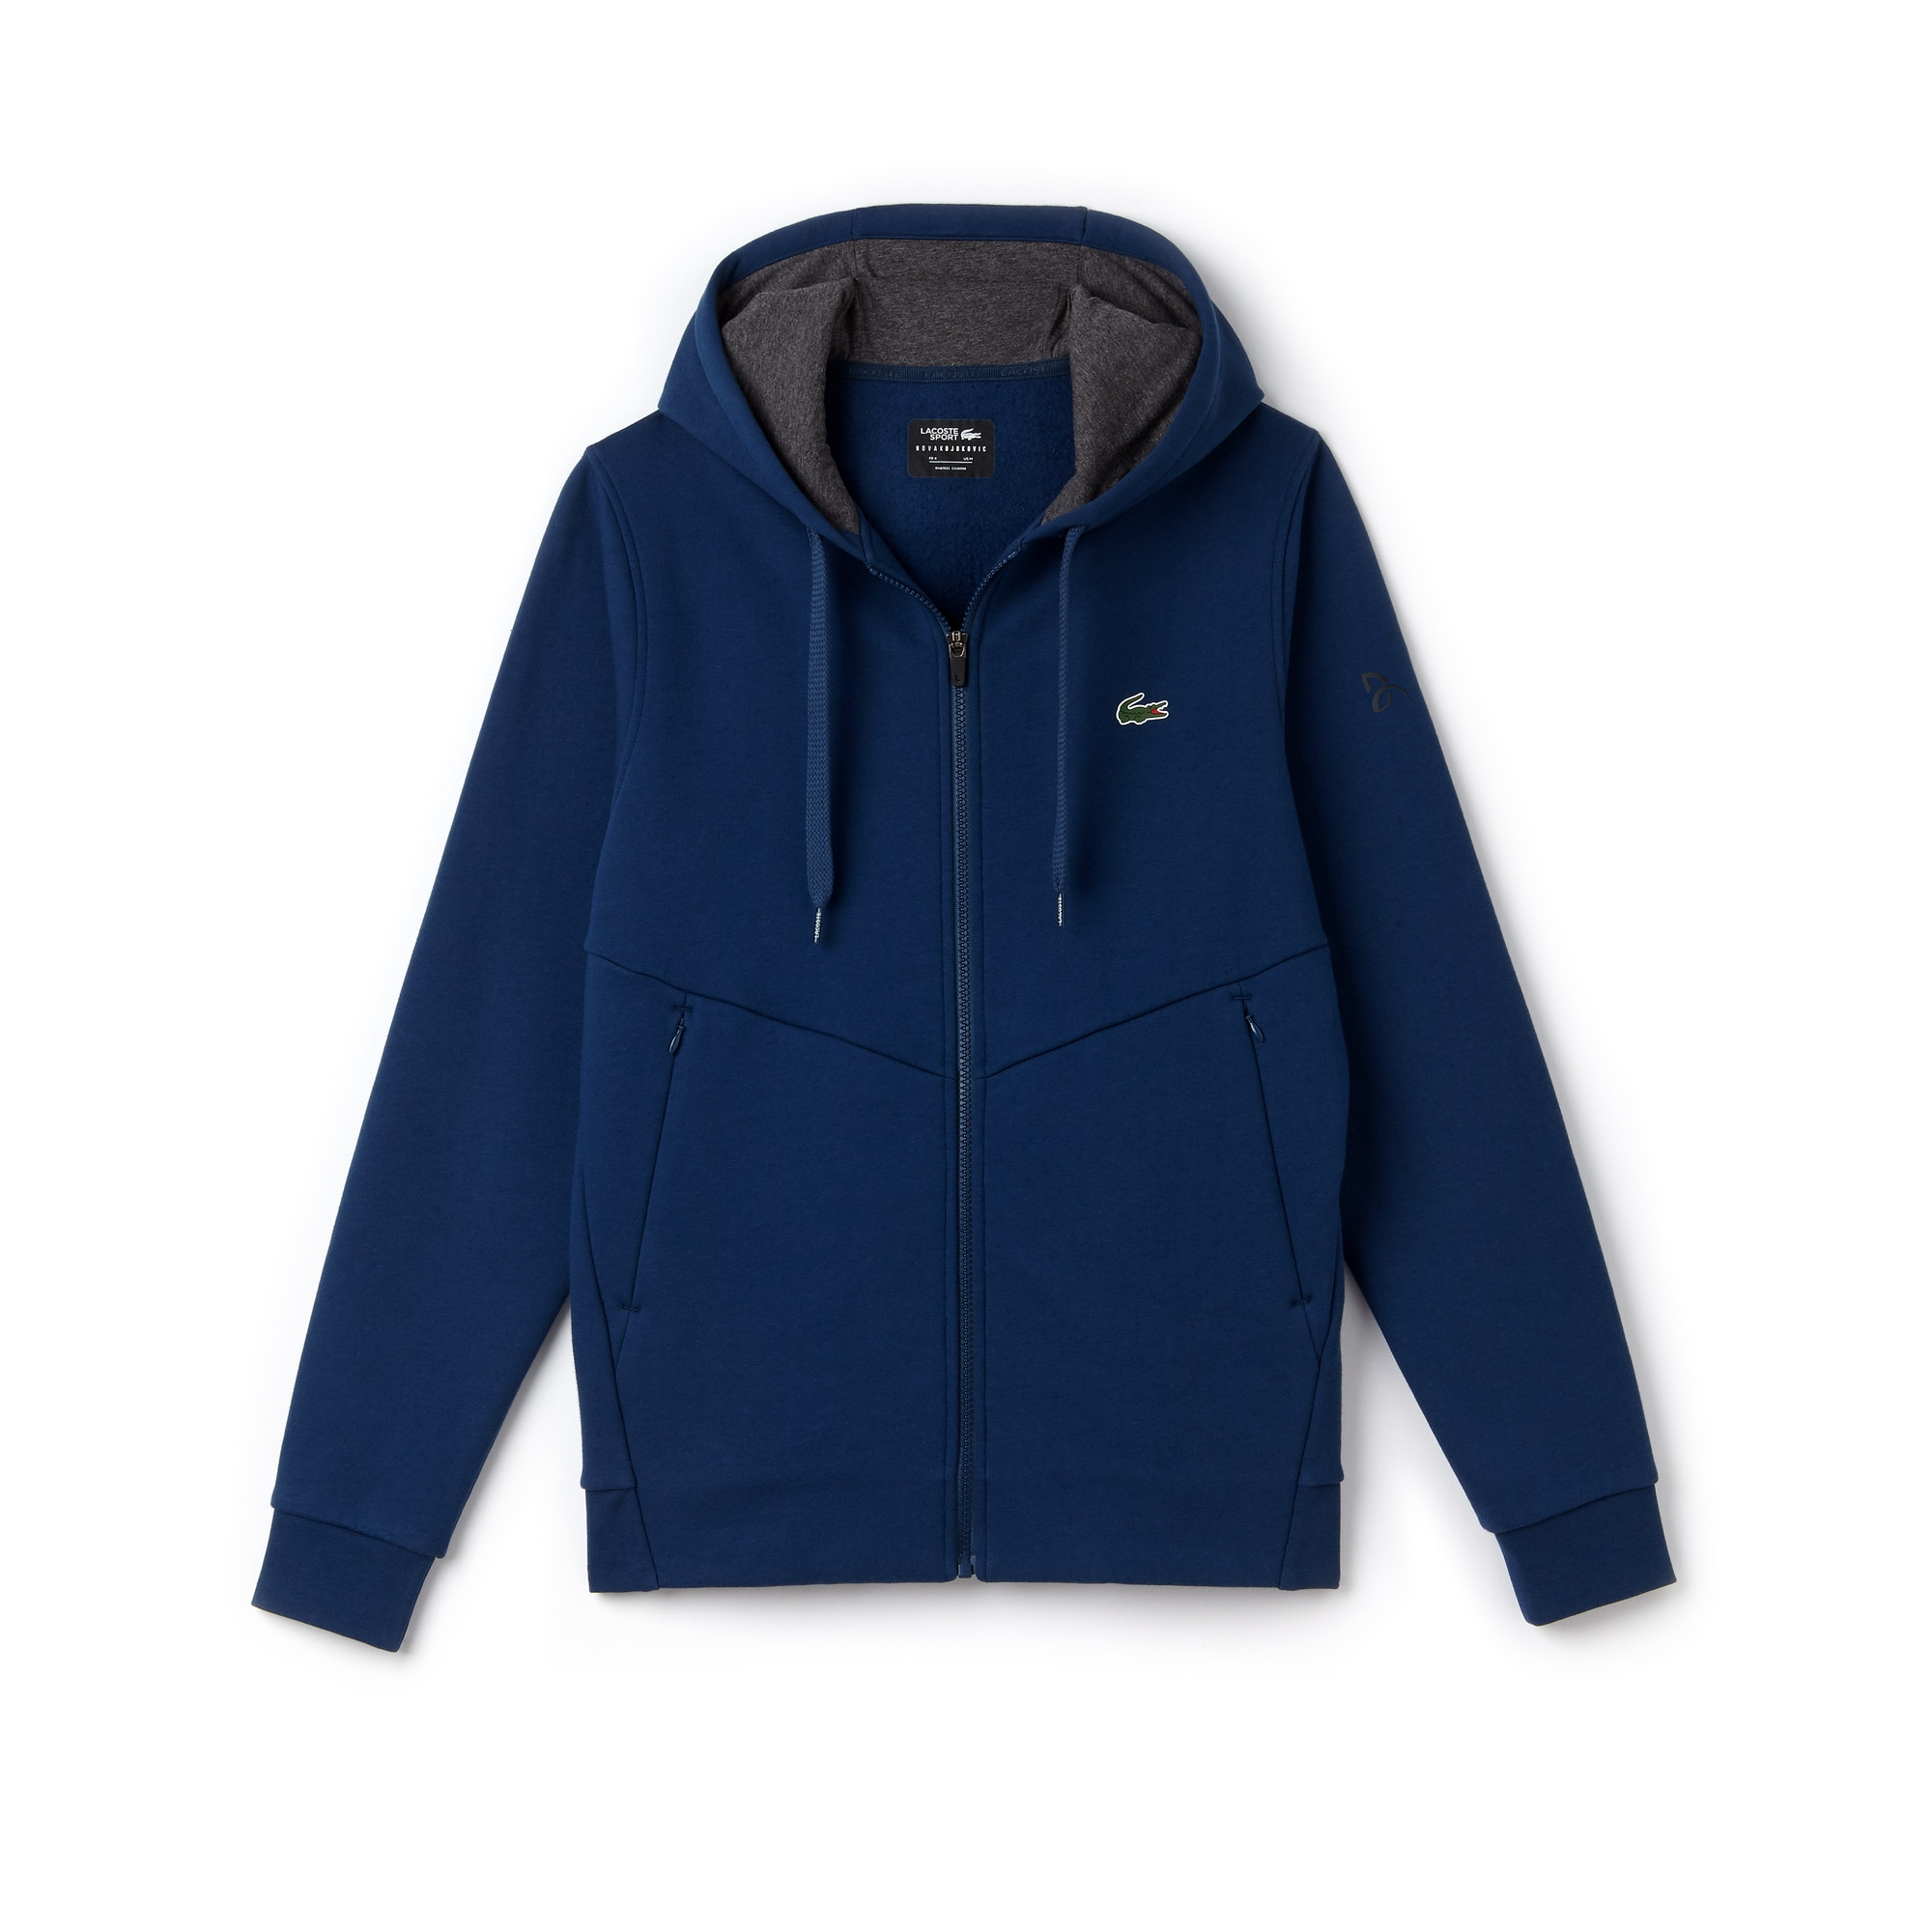 Men's Lacoste SPORT NOVAK DJOKOVIC-OFF COURT COLLECTION Technical Fleece Hooded Zip Sweatshirt